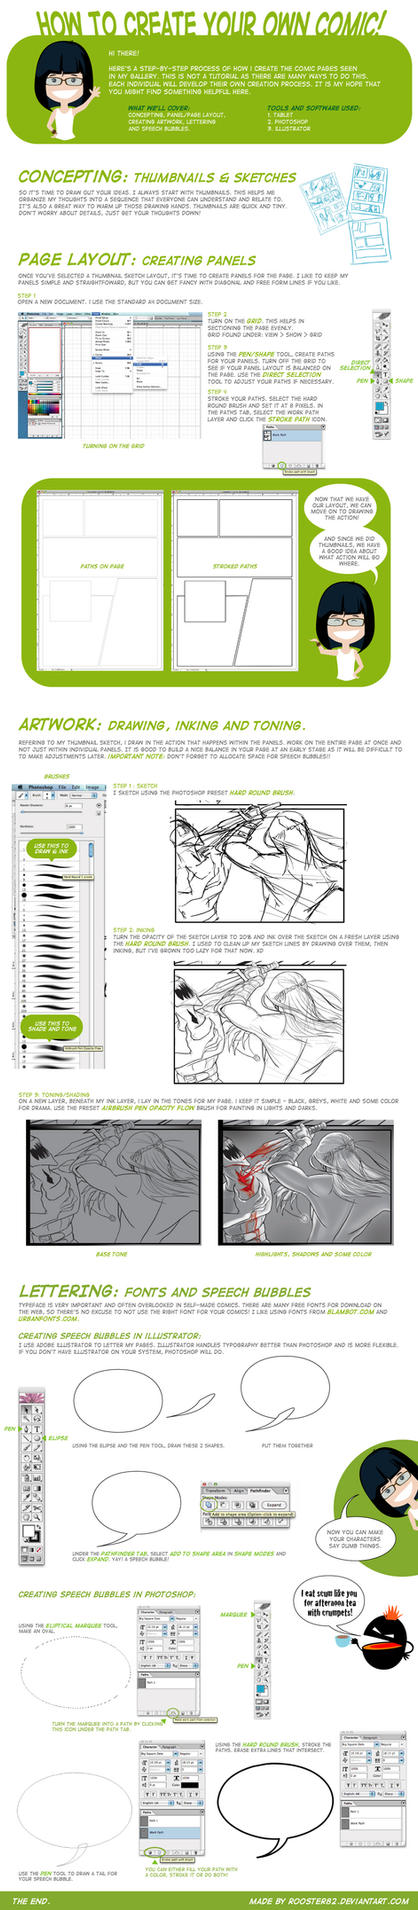 How To Create A Comic Page by rooster82